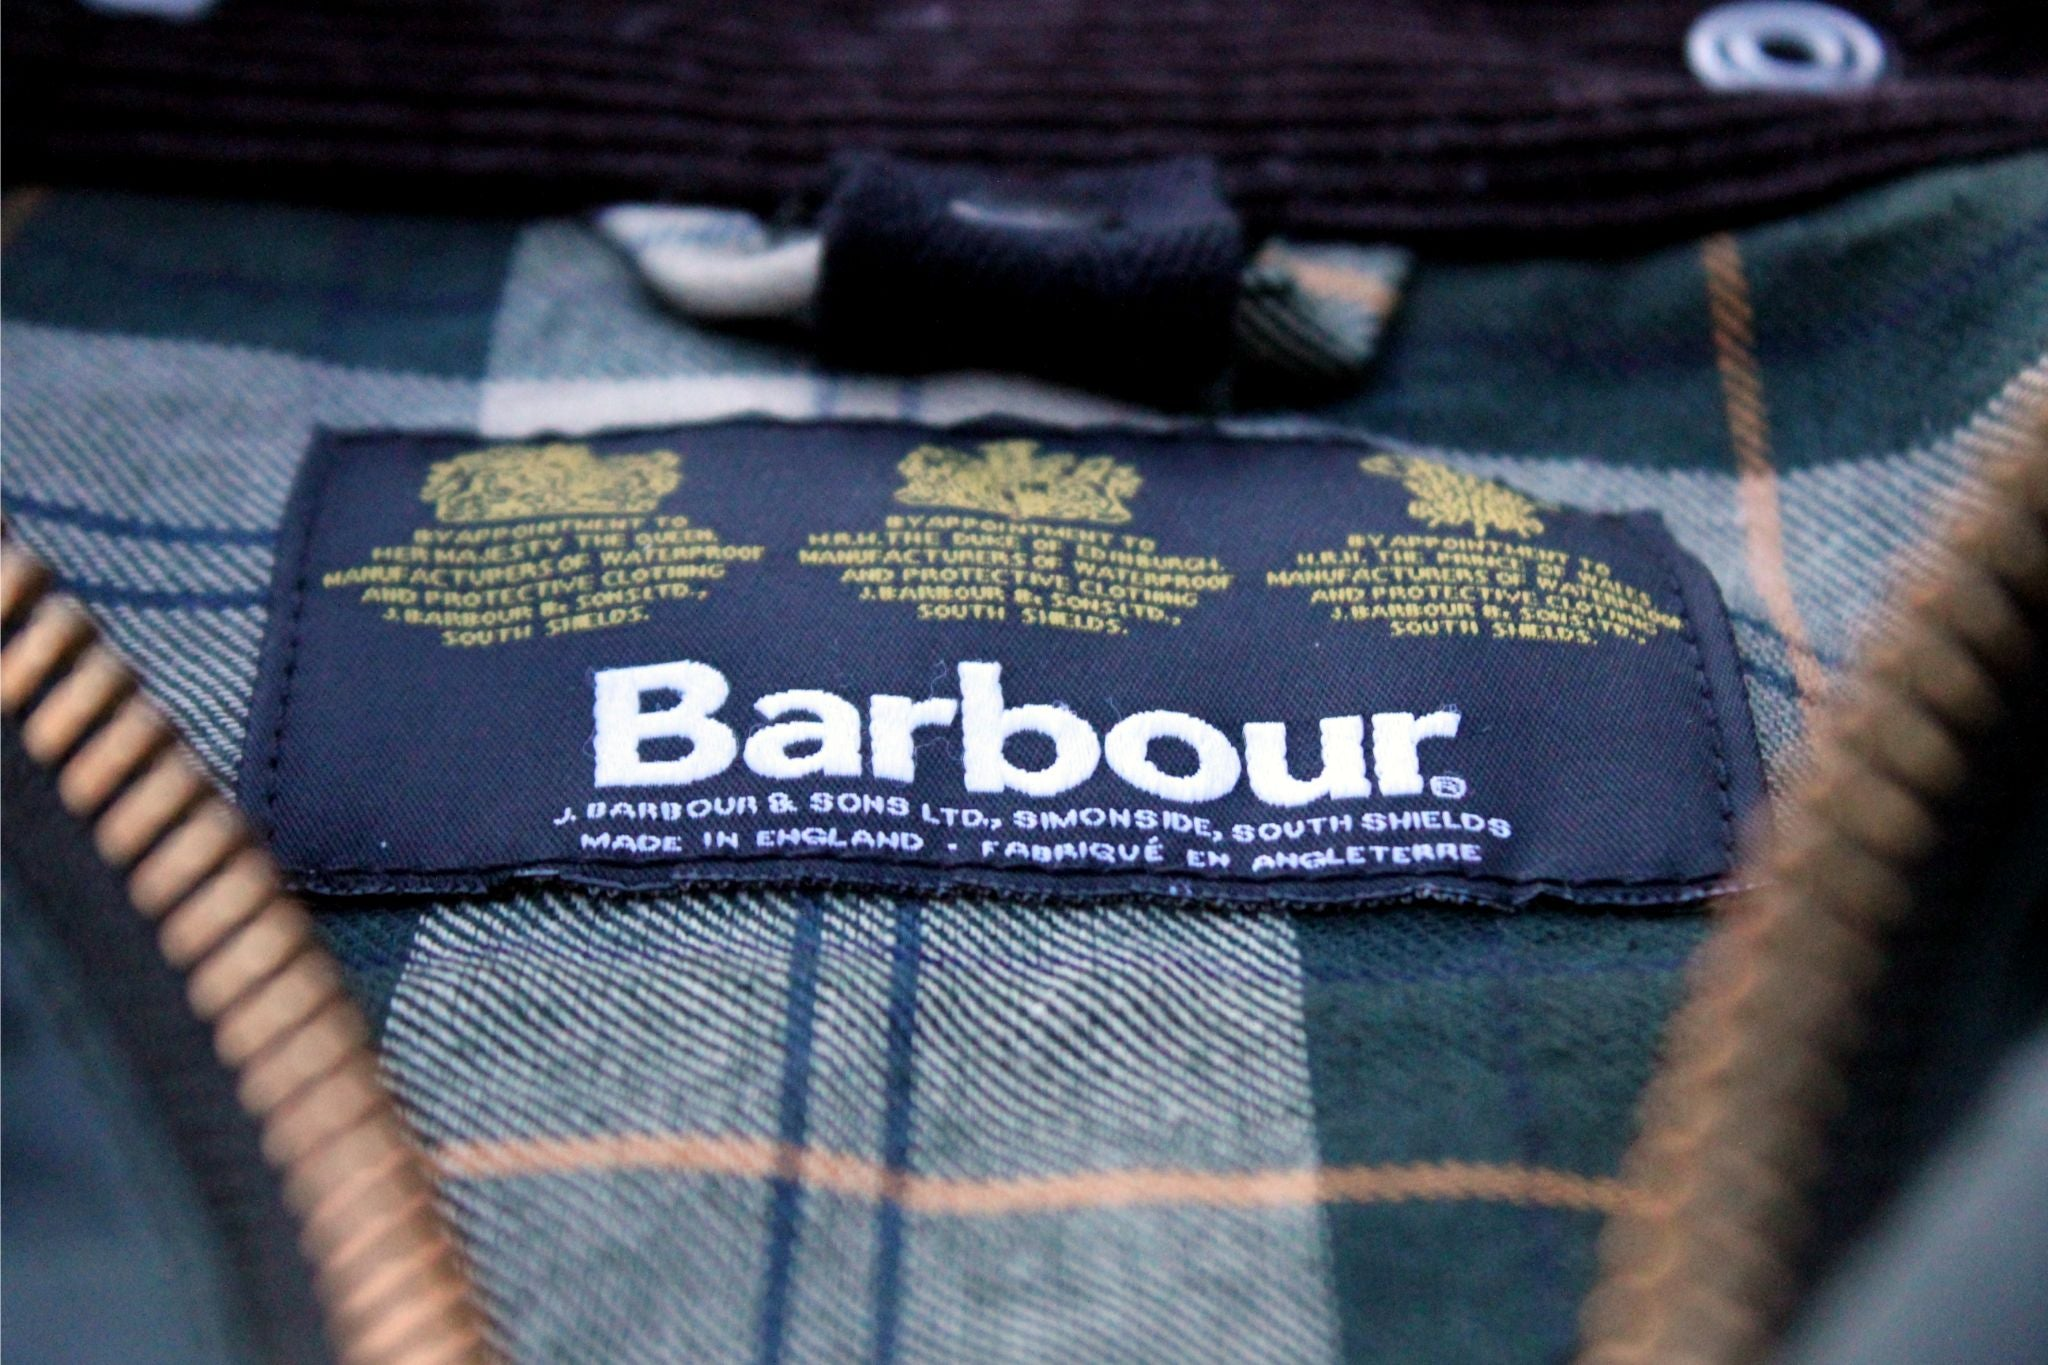 Barbour Bedale SL - label details